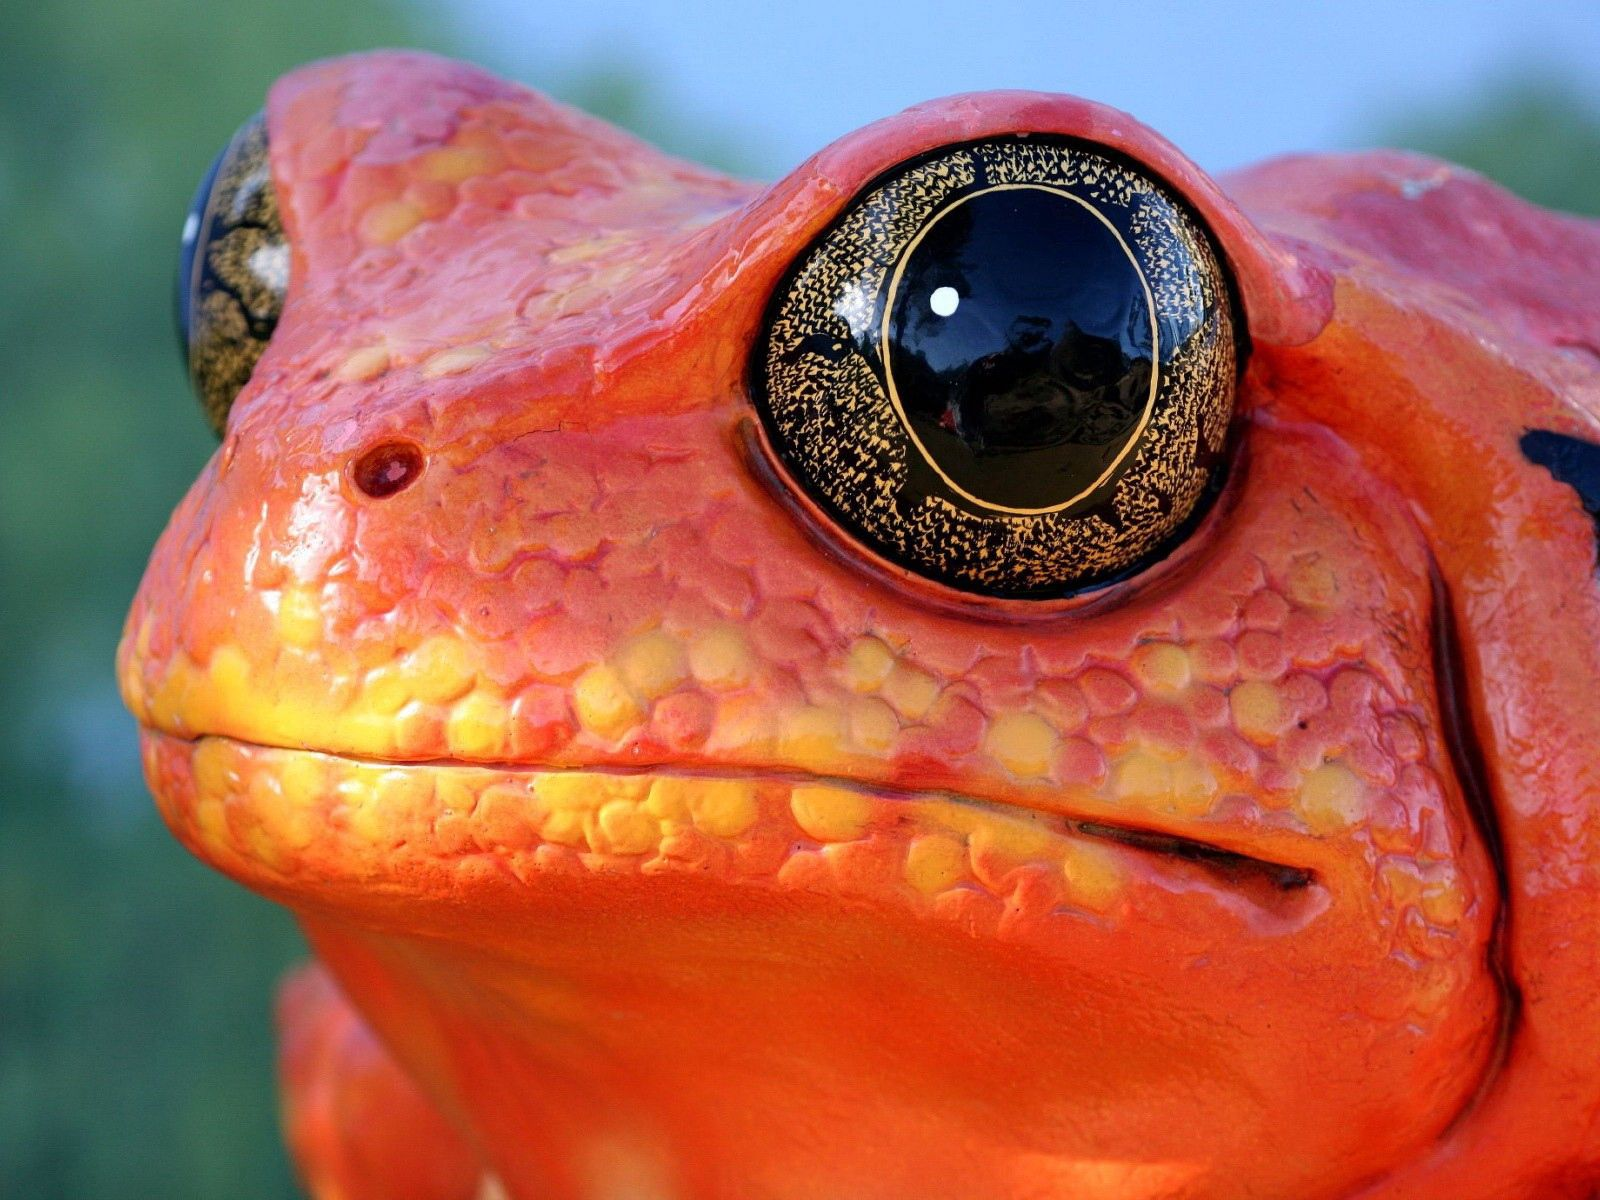 154273 download wallpaper Animals, Frog, Muzzle, Reptile, Color screensavers and pictures for free